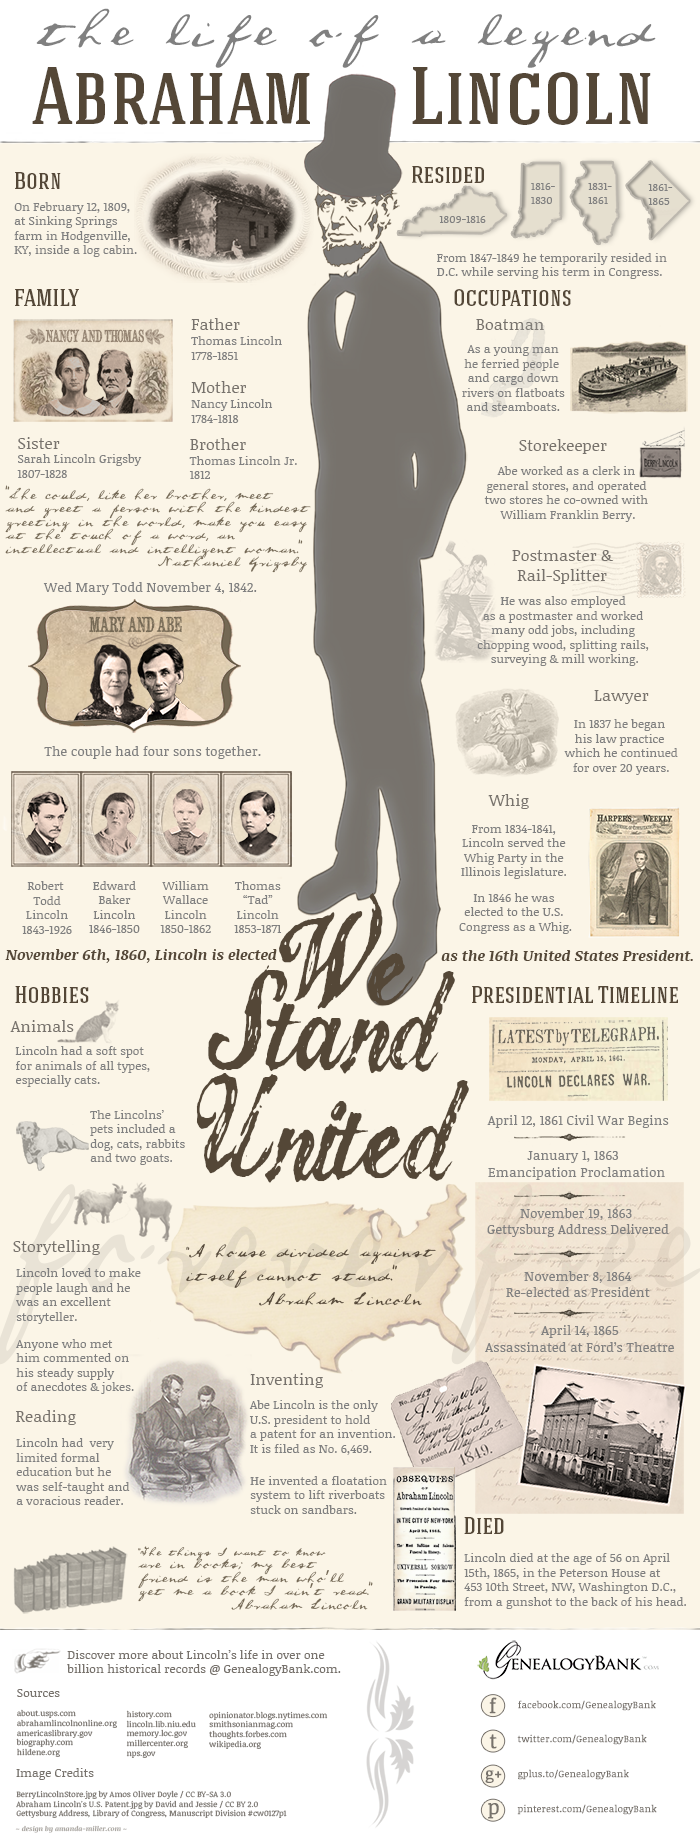 the life of a legend president abraham lincoln infographic get he is political sorry their s be not have a money but their s future could have my satisfastion is who care i believe